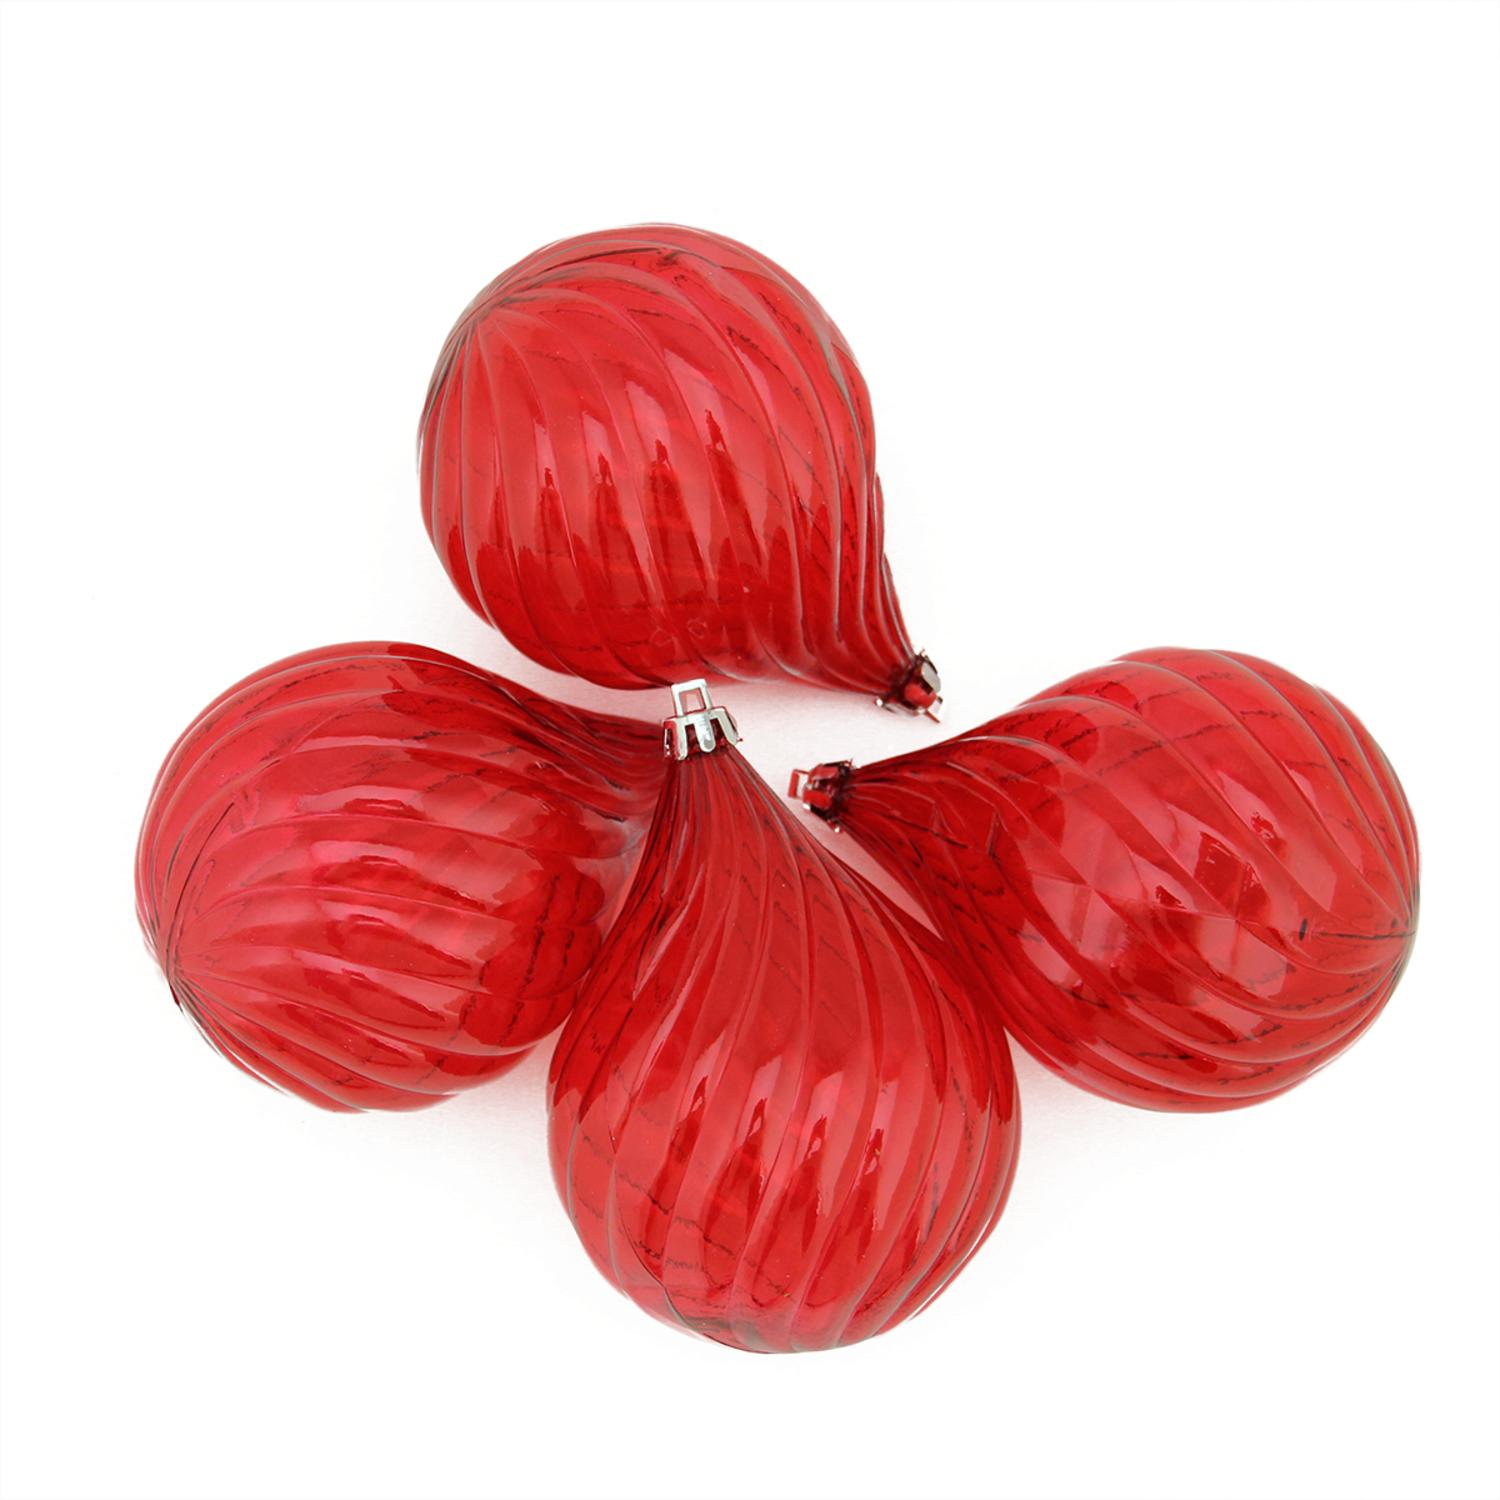 """4ct Red Hot Transparent Finial Drop Shatterproof Christmas Ornaments 4.5"""" - image 1 of 1"""